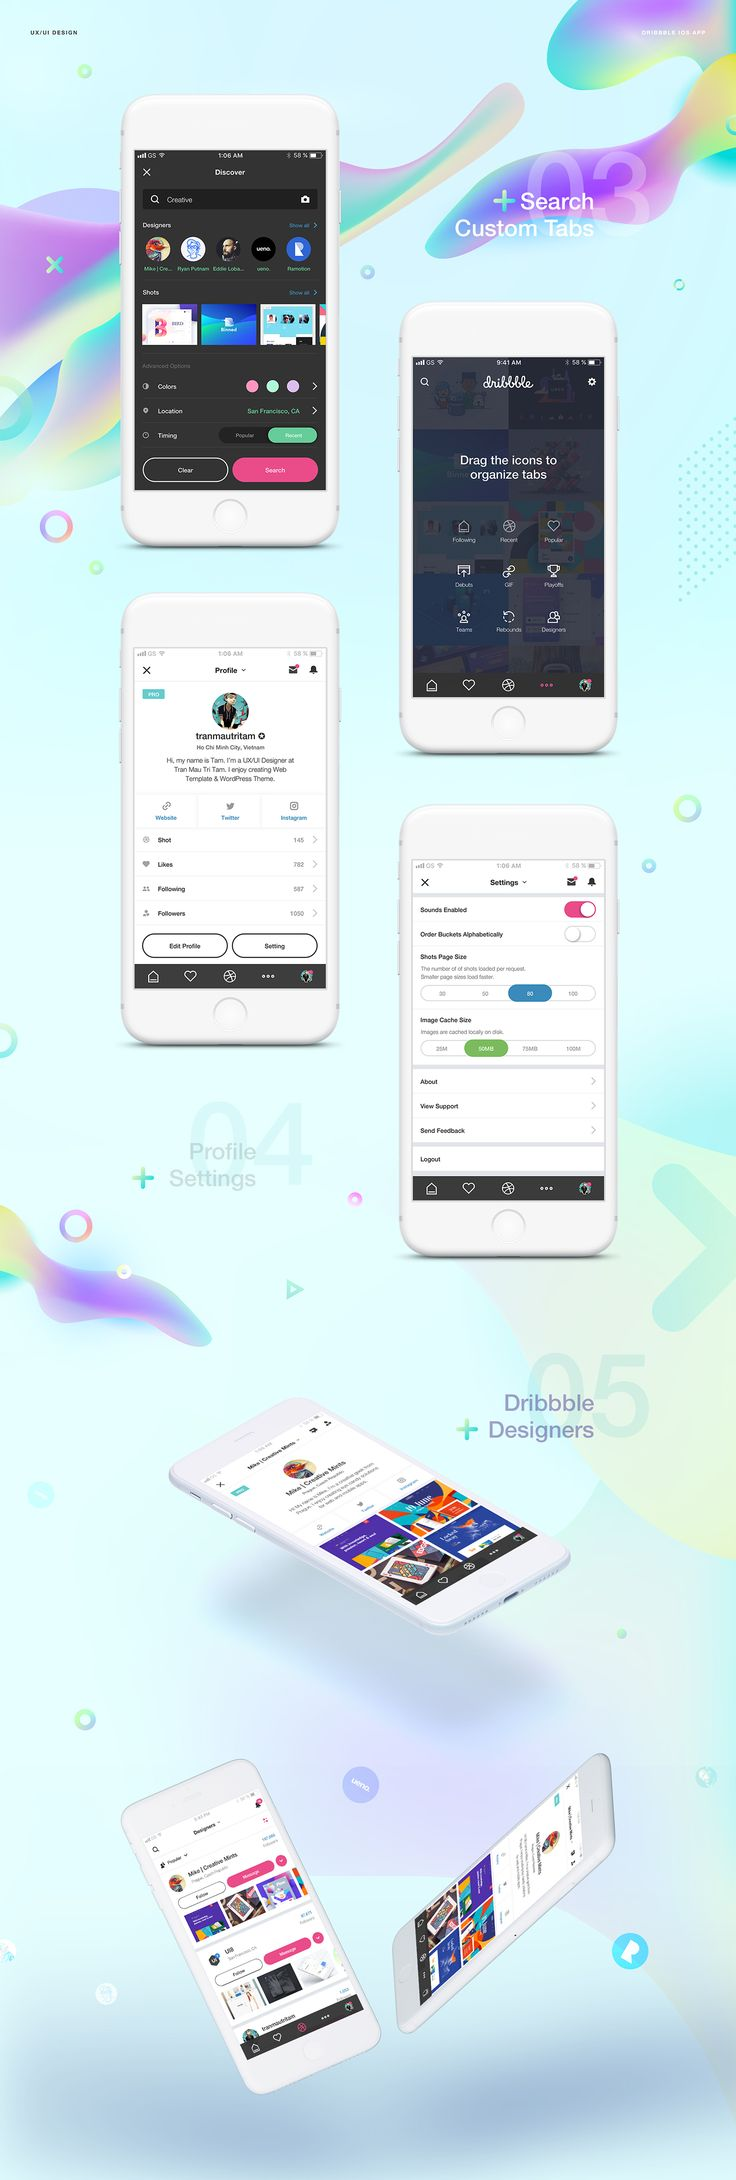 Dribbble social app ui design jpg by ramotion - A Redesign Concept For Dribbble That Involves Interaction Design And Ios Design Designed By Vietnam Based Designer Trau Mau Tri Tam